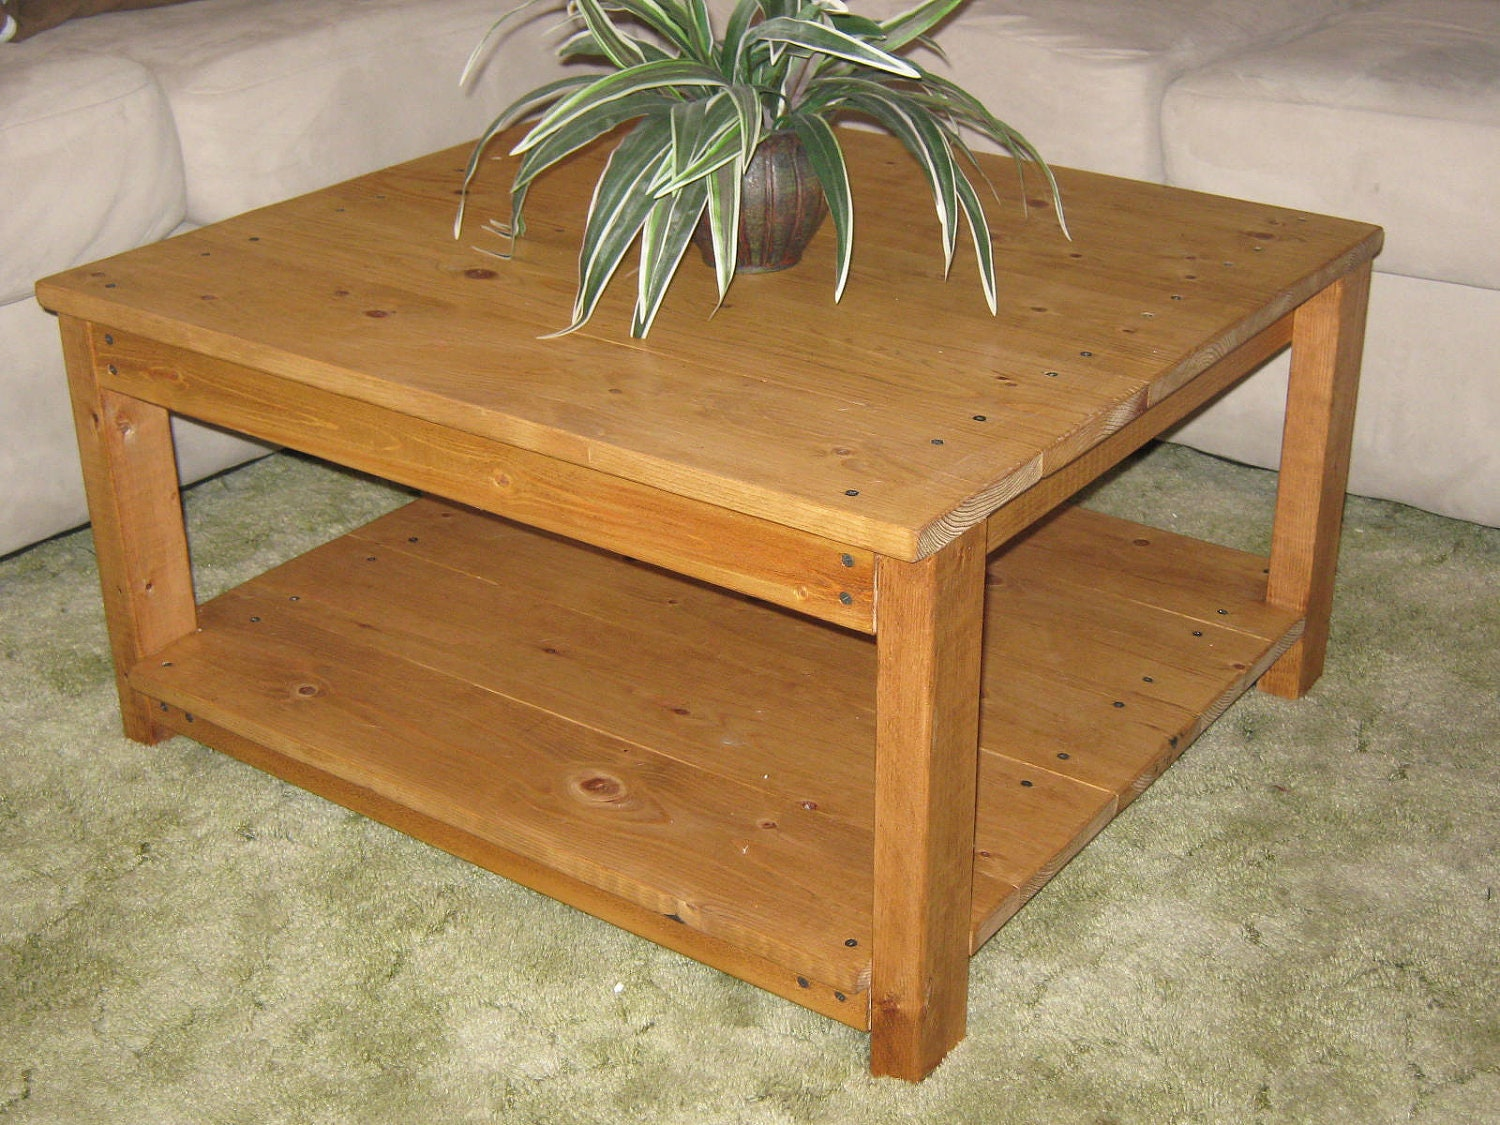 Diy plans to make square wooden coffee table by wingstoshop for Good table design